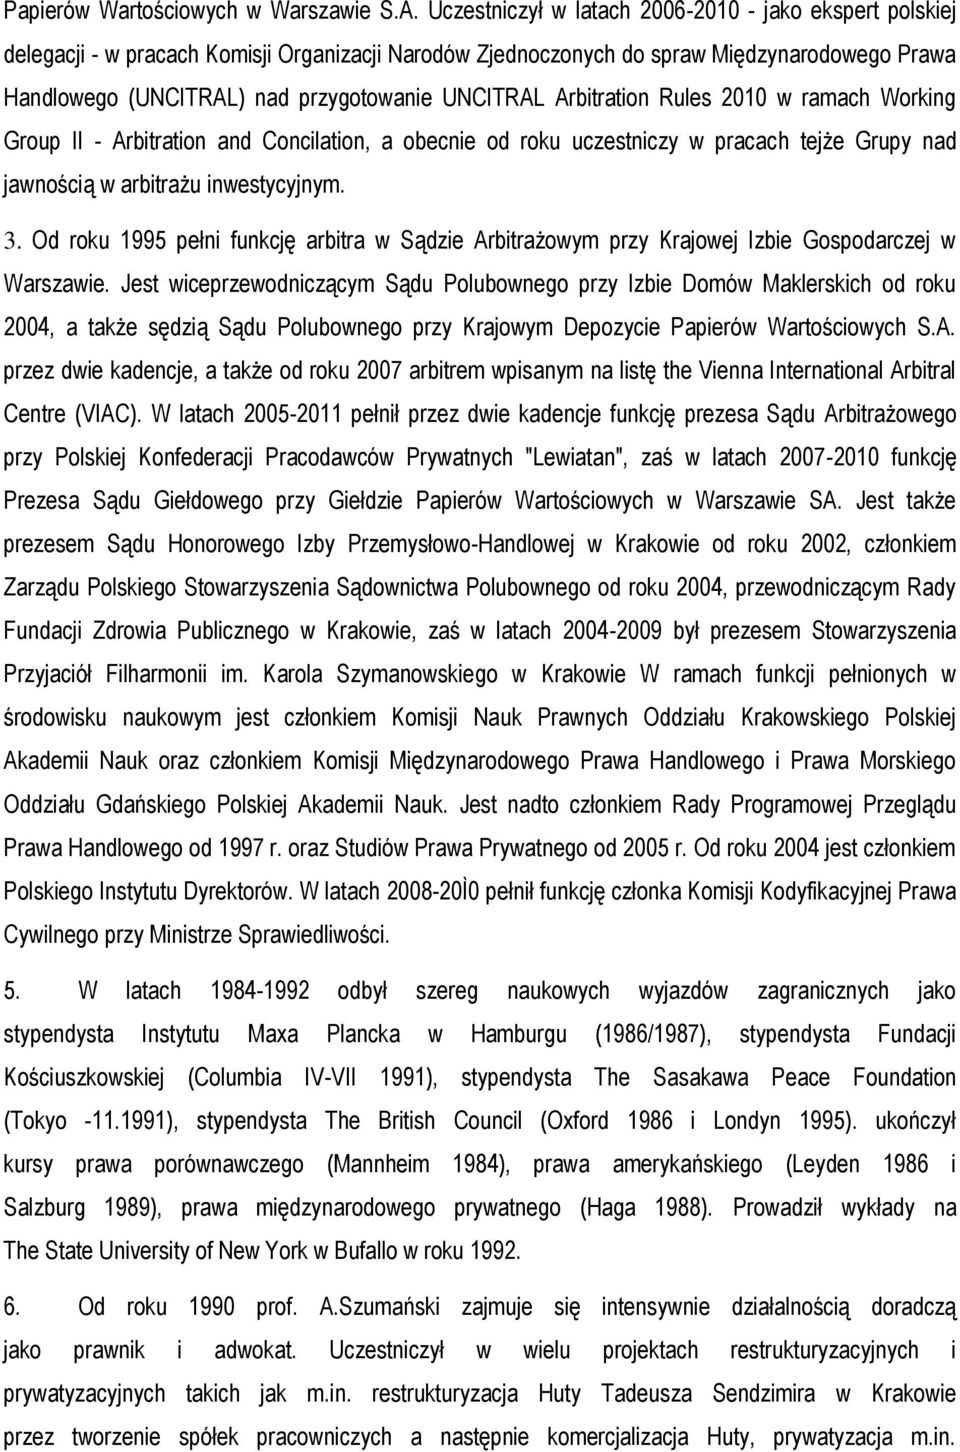 UNCITRAL Arbitration Rules 2010 w ramach Working Group II - Arbitration and Concilation, a obecnie od roku uczestniczy w pracach tejże Grupy nad jawnością w arbitrażu inwestycyjnym. 3.